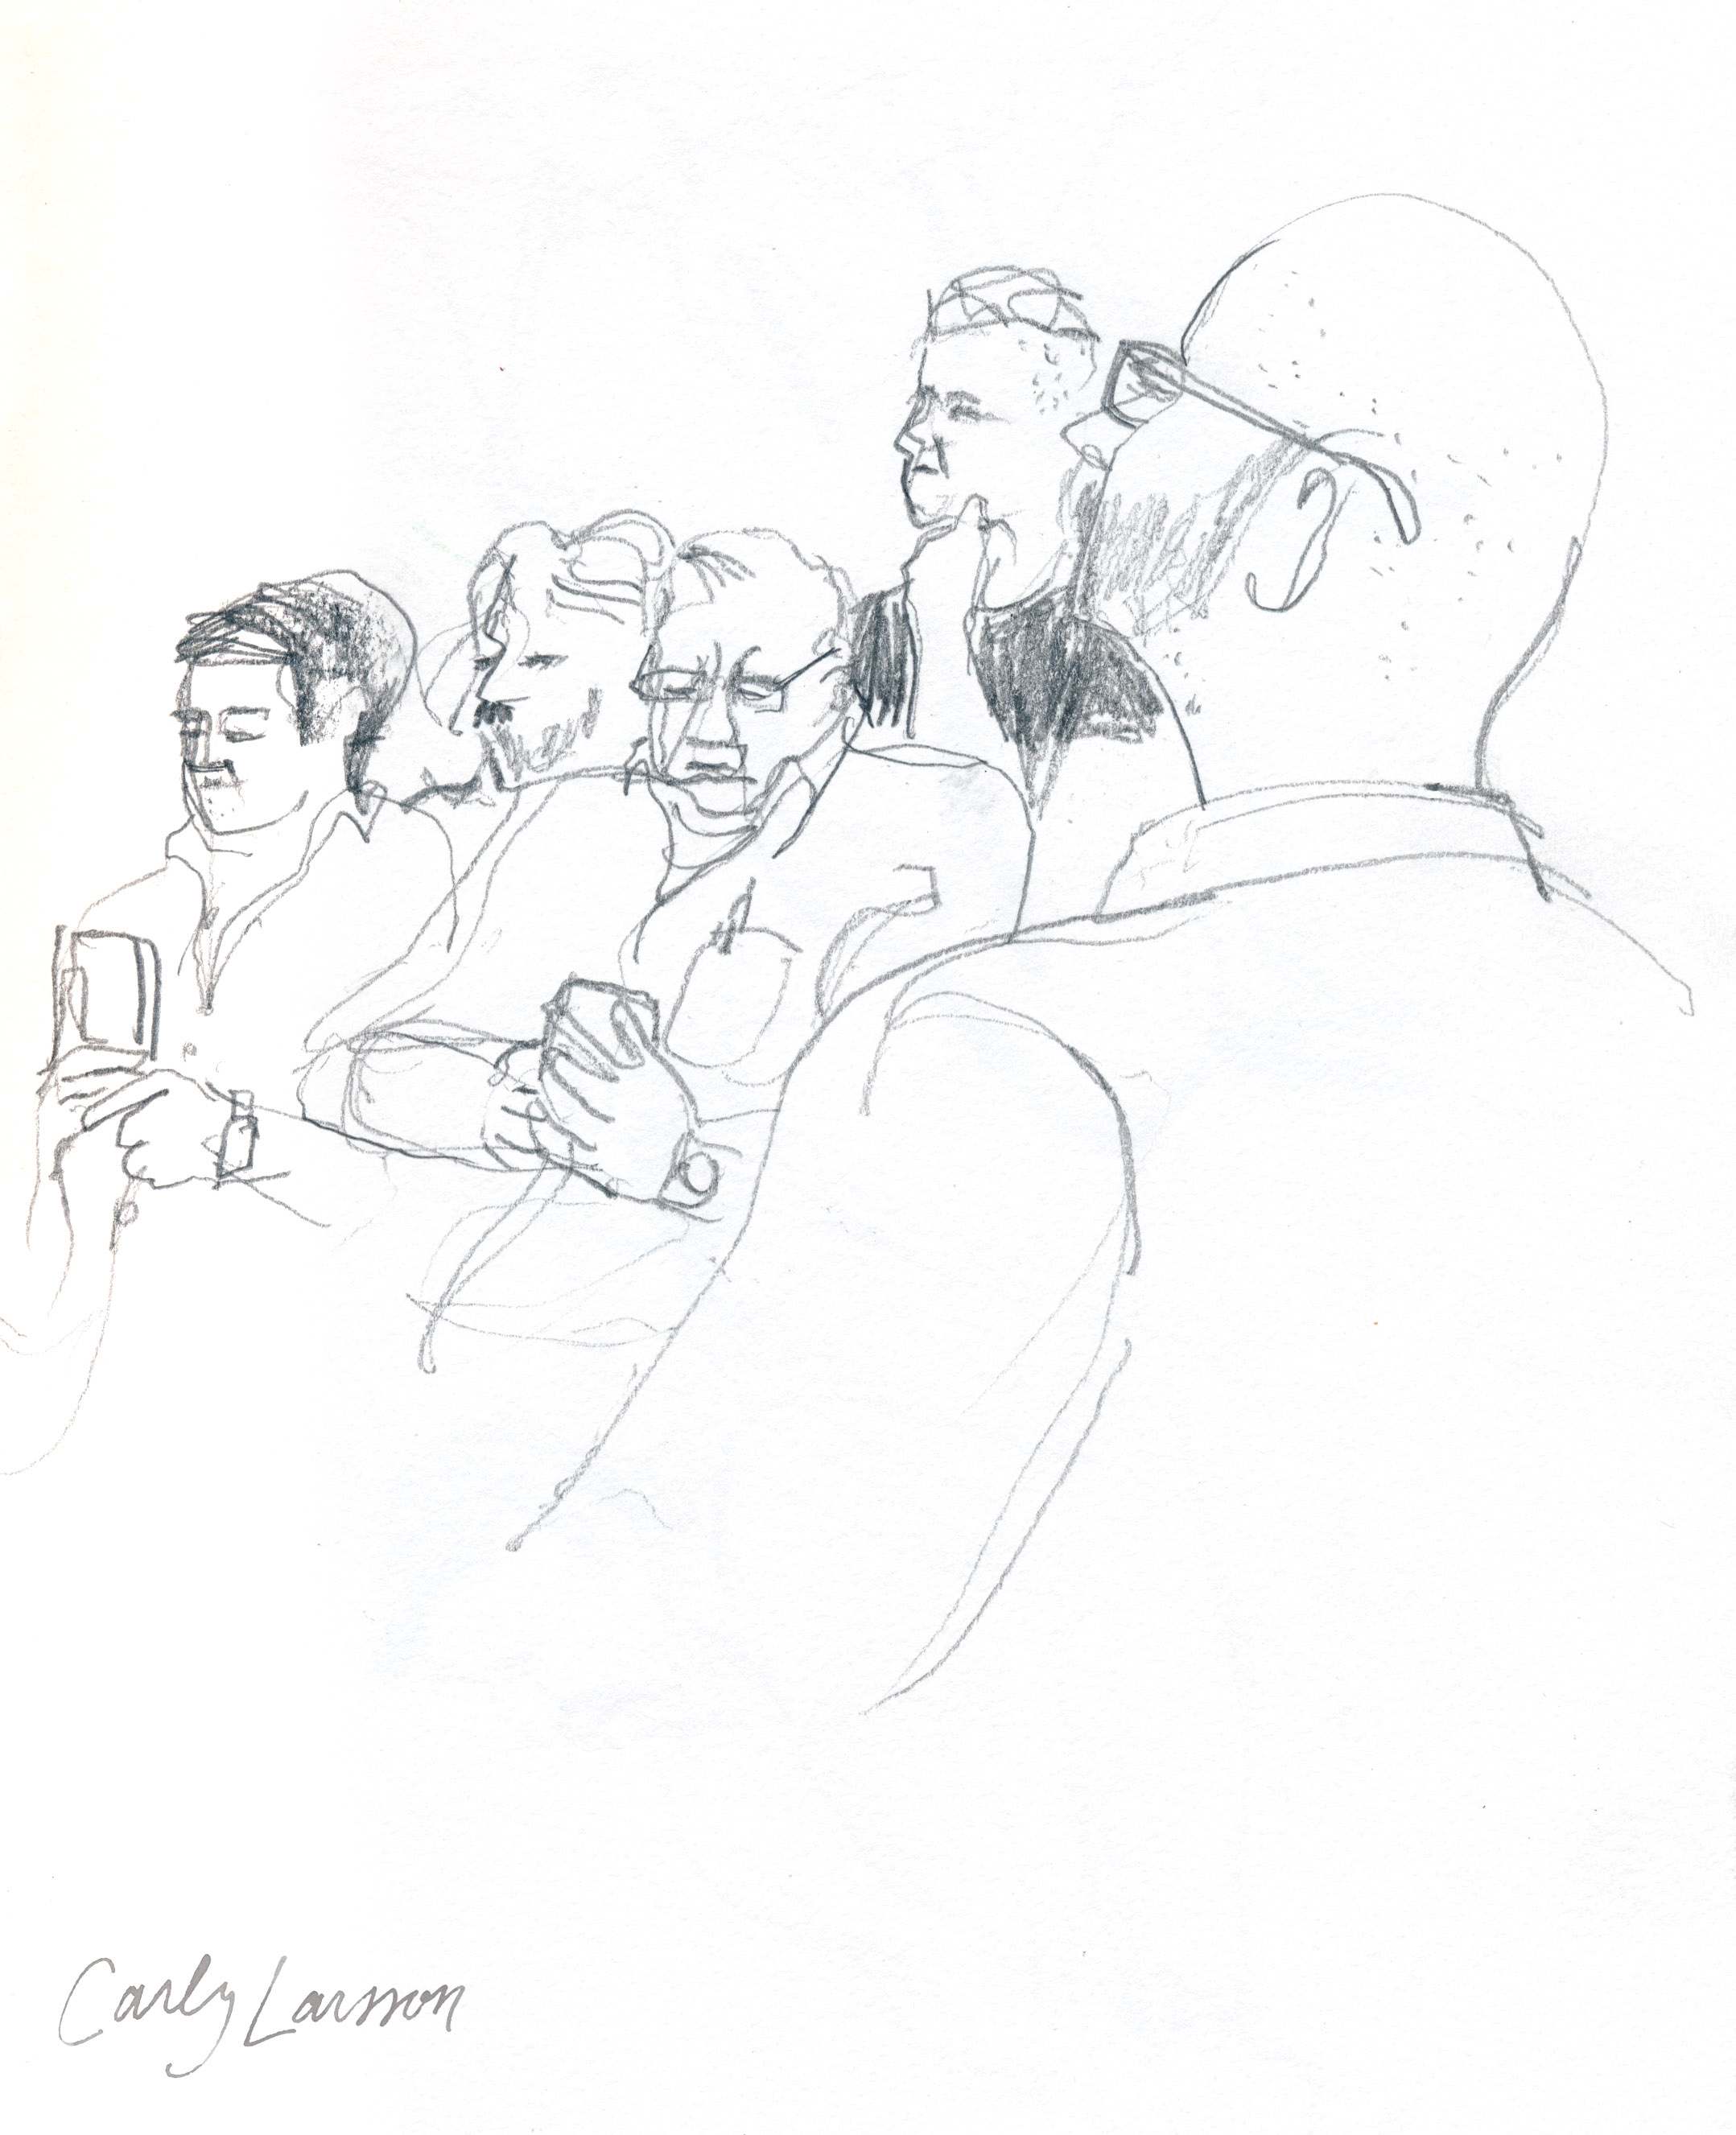 Some guys sneaking onto their cell phones in the court room before the judge returned from lunch (30 minutes late).